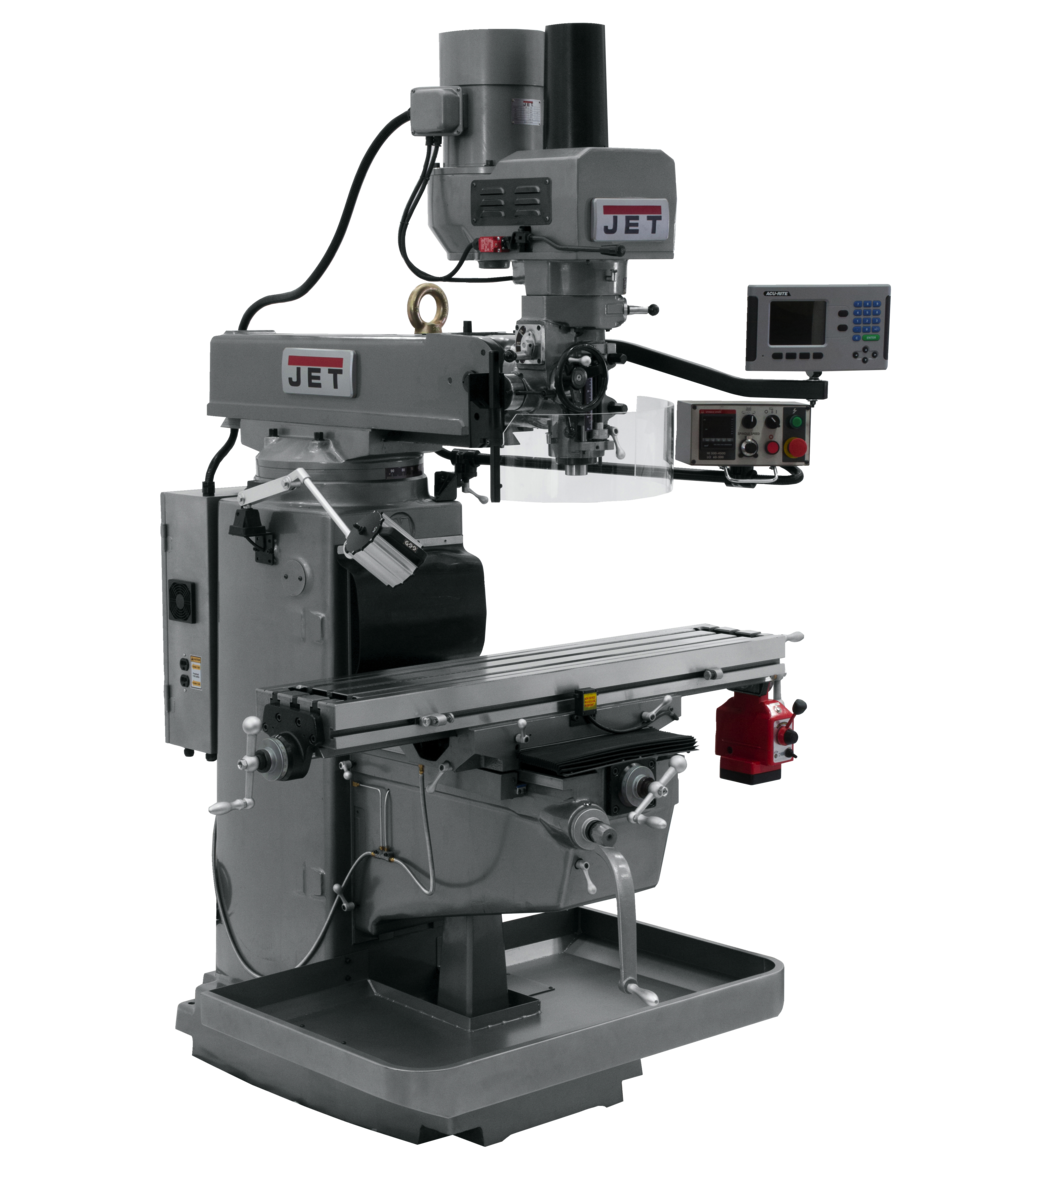 JTM-1050EVS2/230 Mill With 3-Axis Acu-Rite 203 DRO (Knee) With X-Axis Powerfeed and Air Powered Draw